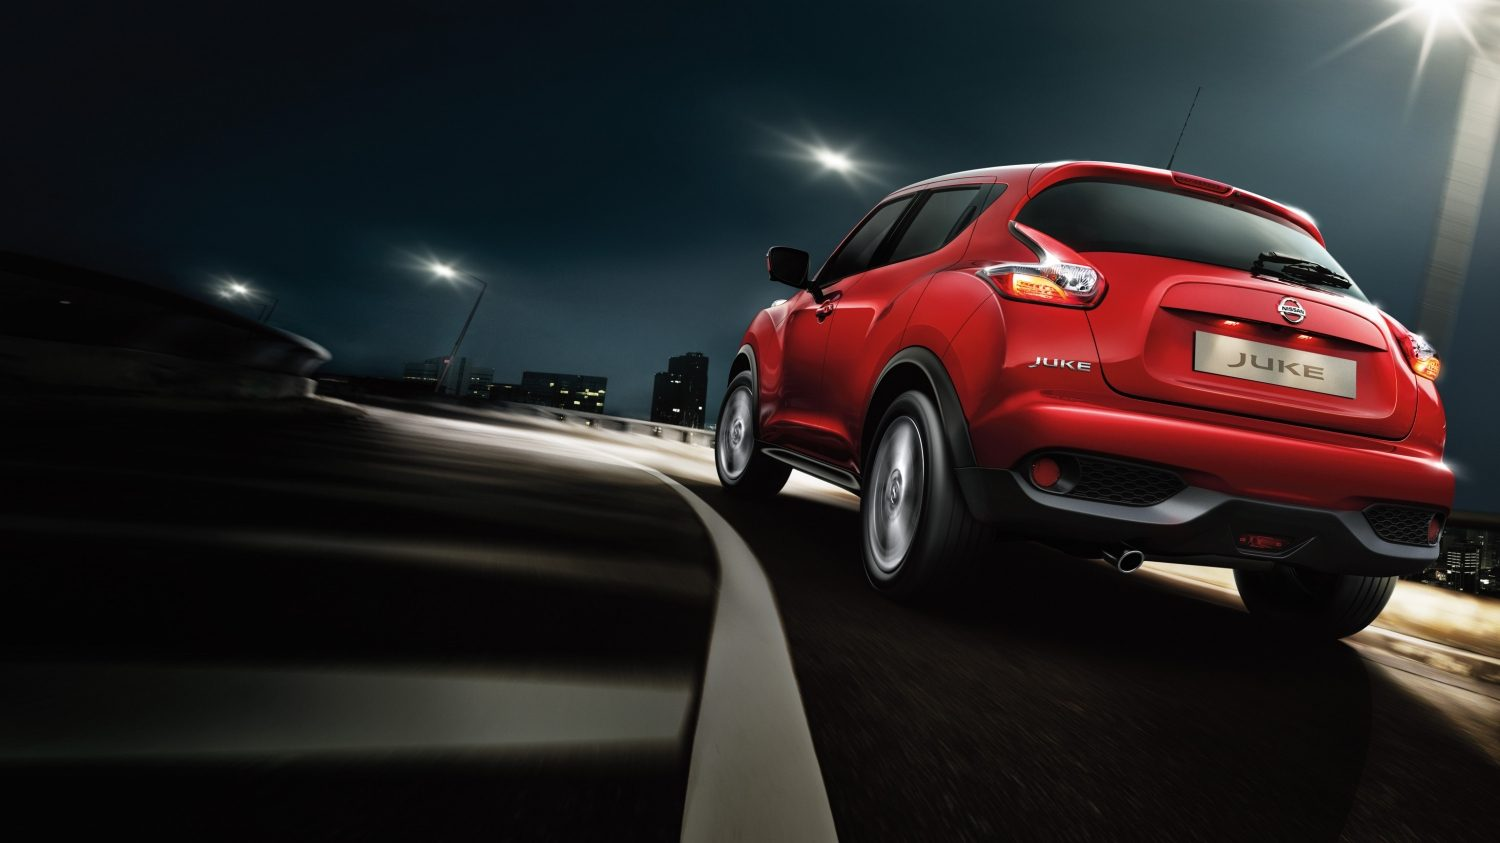 Nissan Juke Darkt Red - Compact crossover